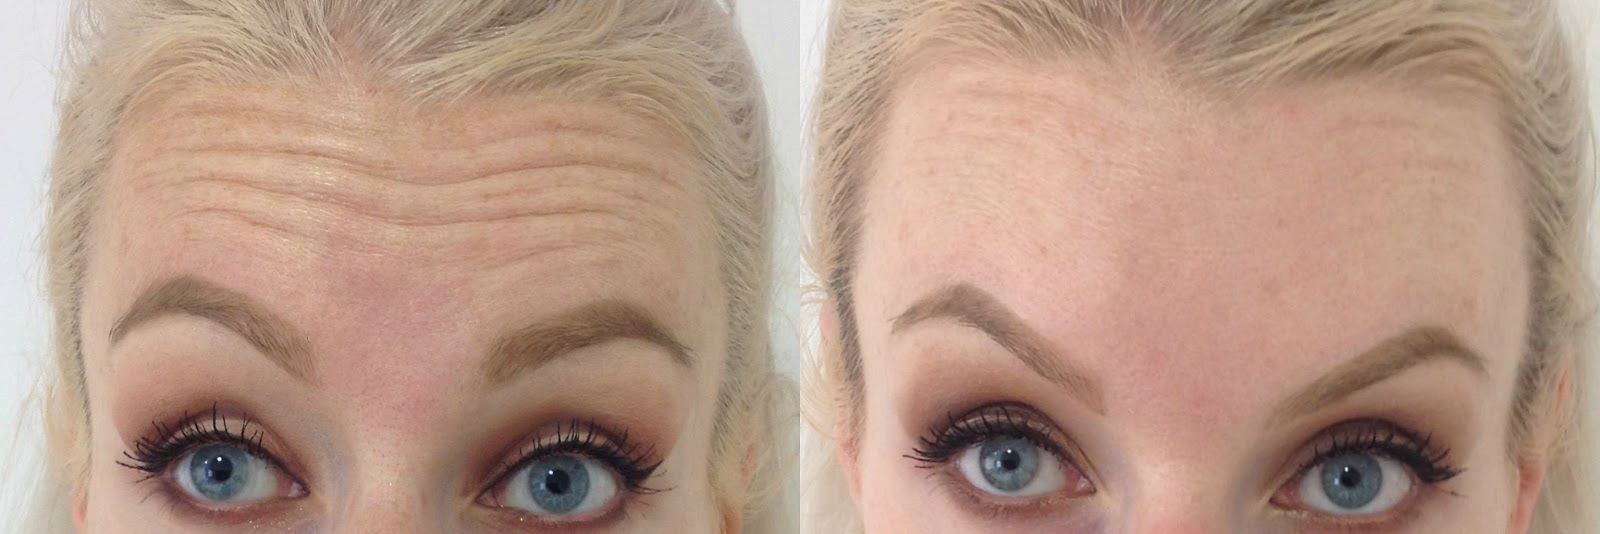 Before and after botox, forehead, Dr Mark Holmes, botox, wrinkles